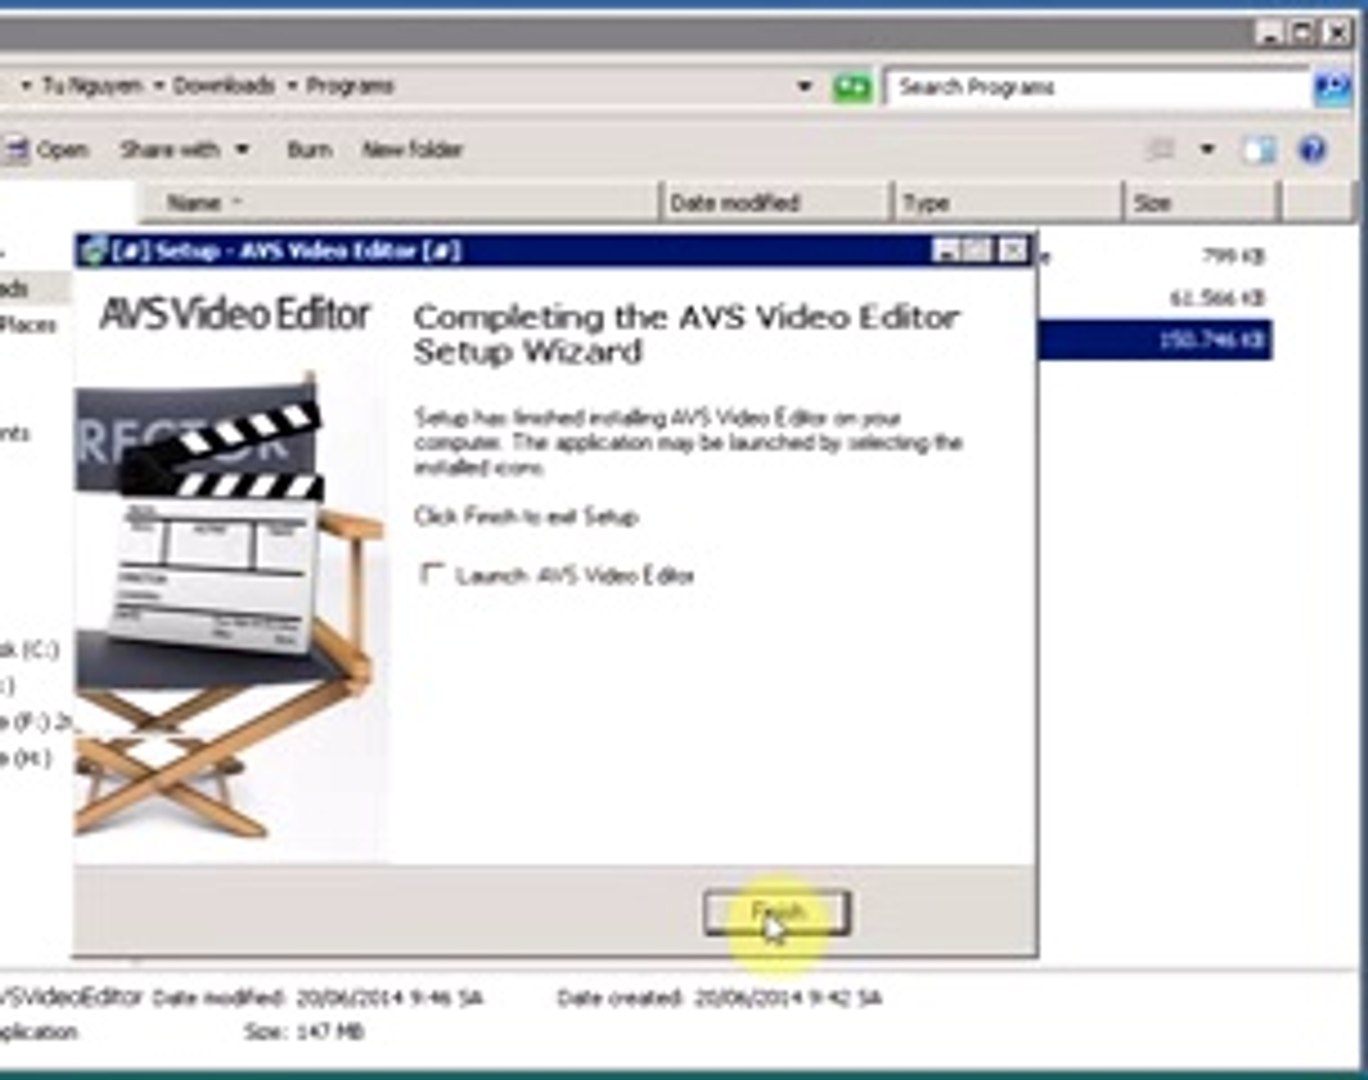 avs video editor 6.1 free download with crack